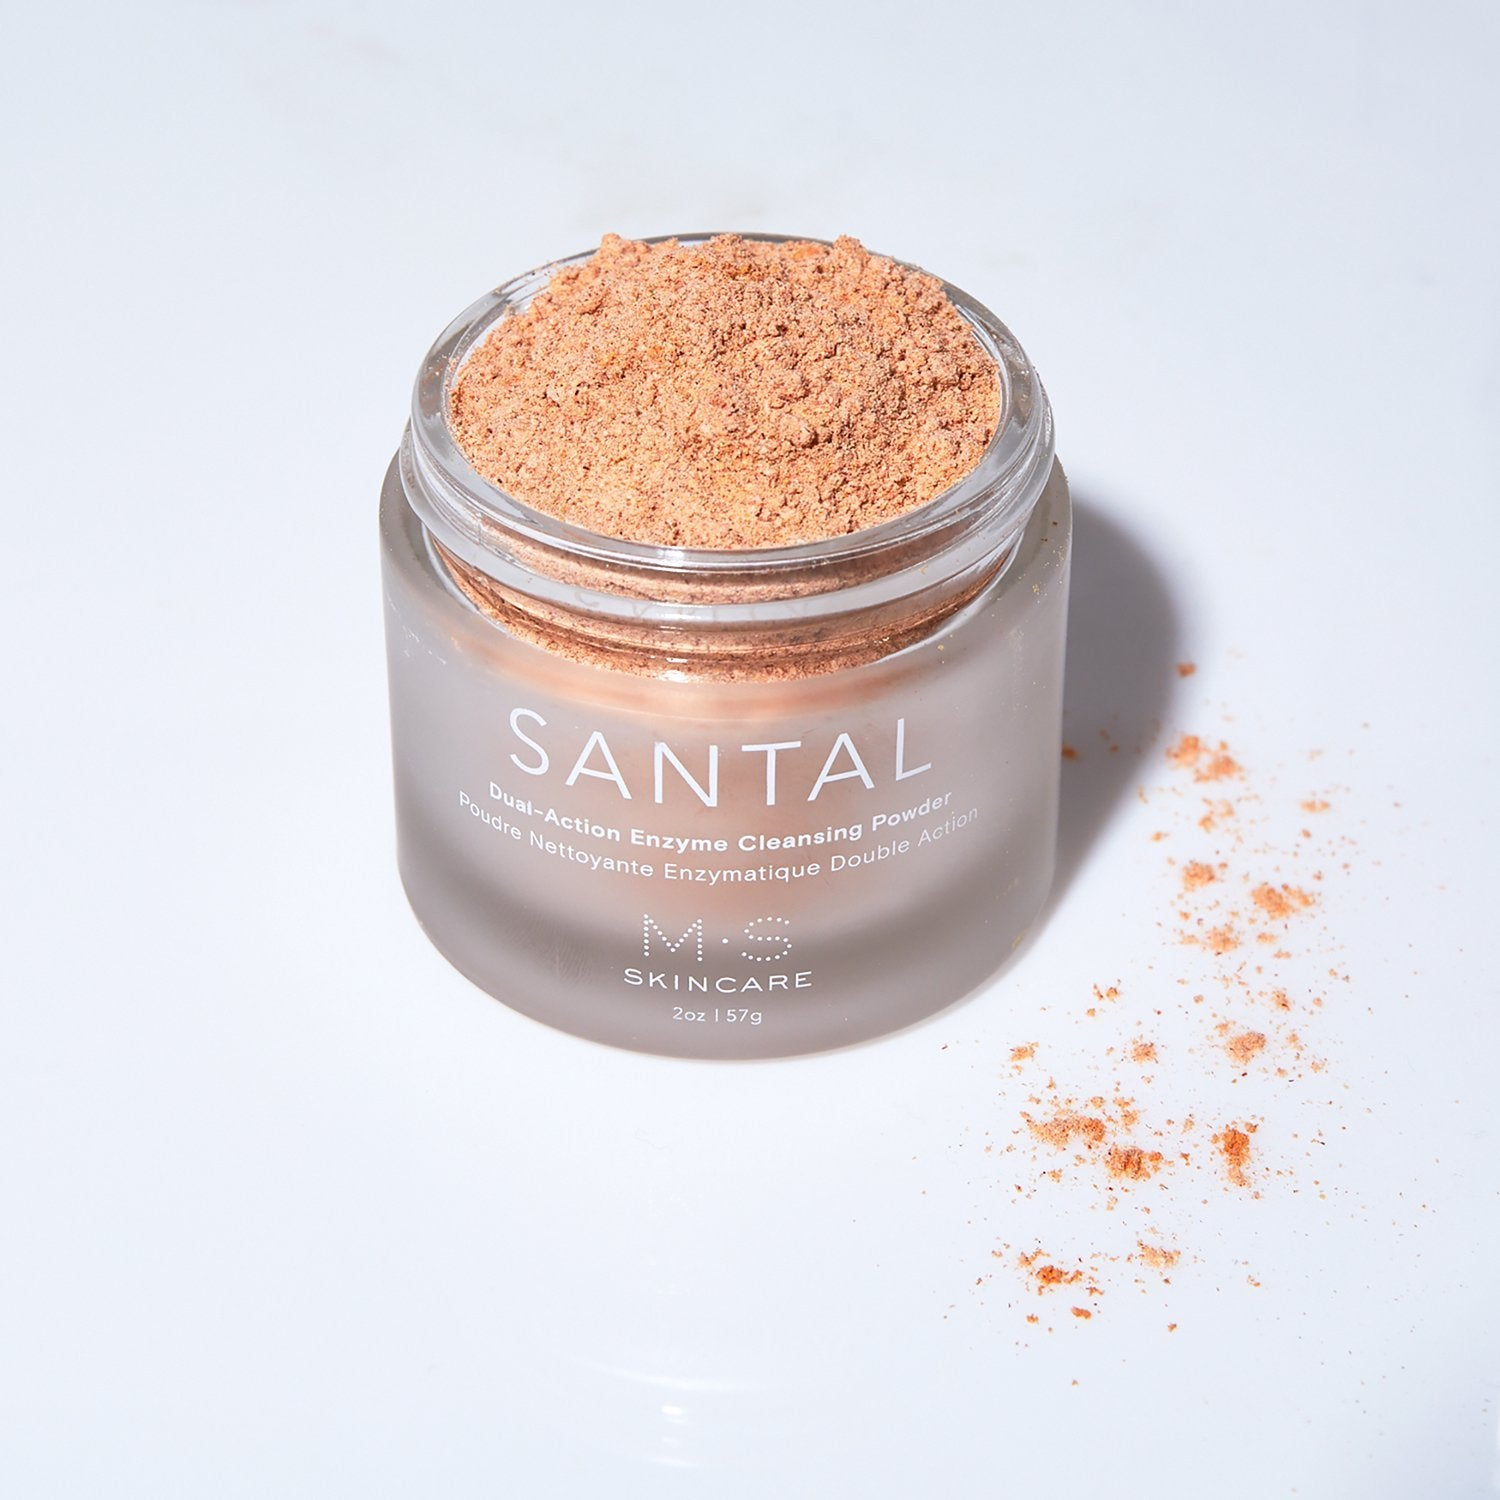 SANTAL | Dual-Action Enzyme Cleansing Powder - Mullein and Sparrow